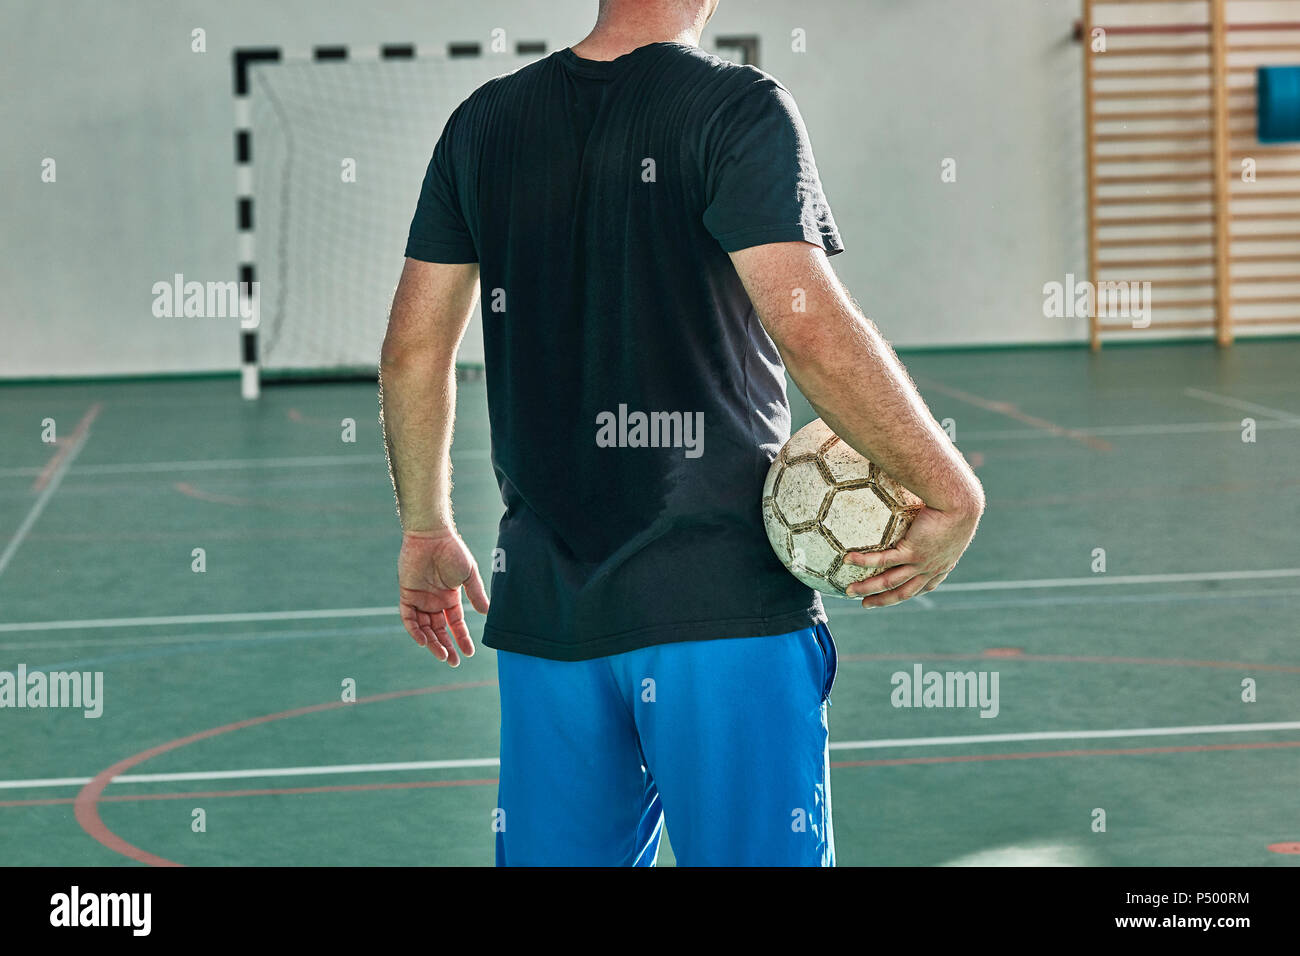 Rear view of indoor soccer player holding the ball - Stock Image